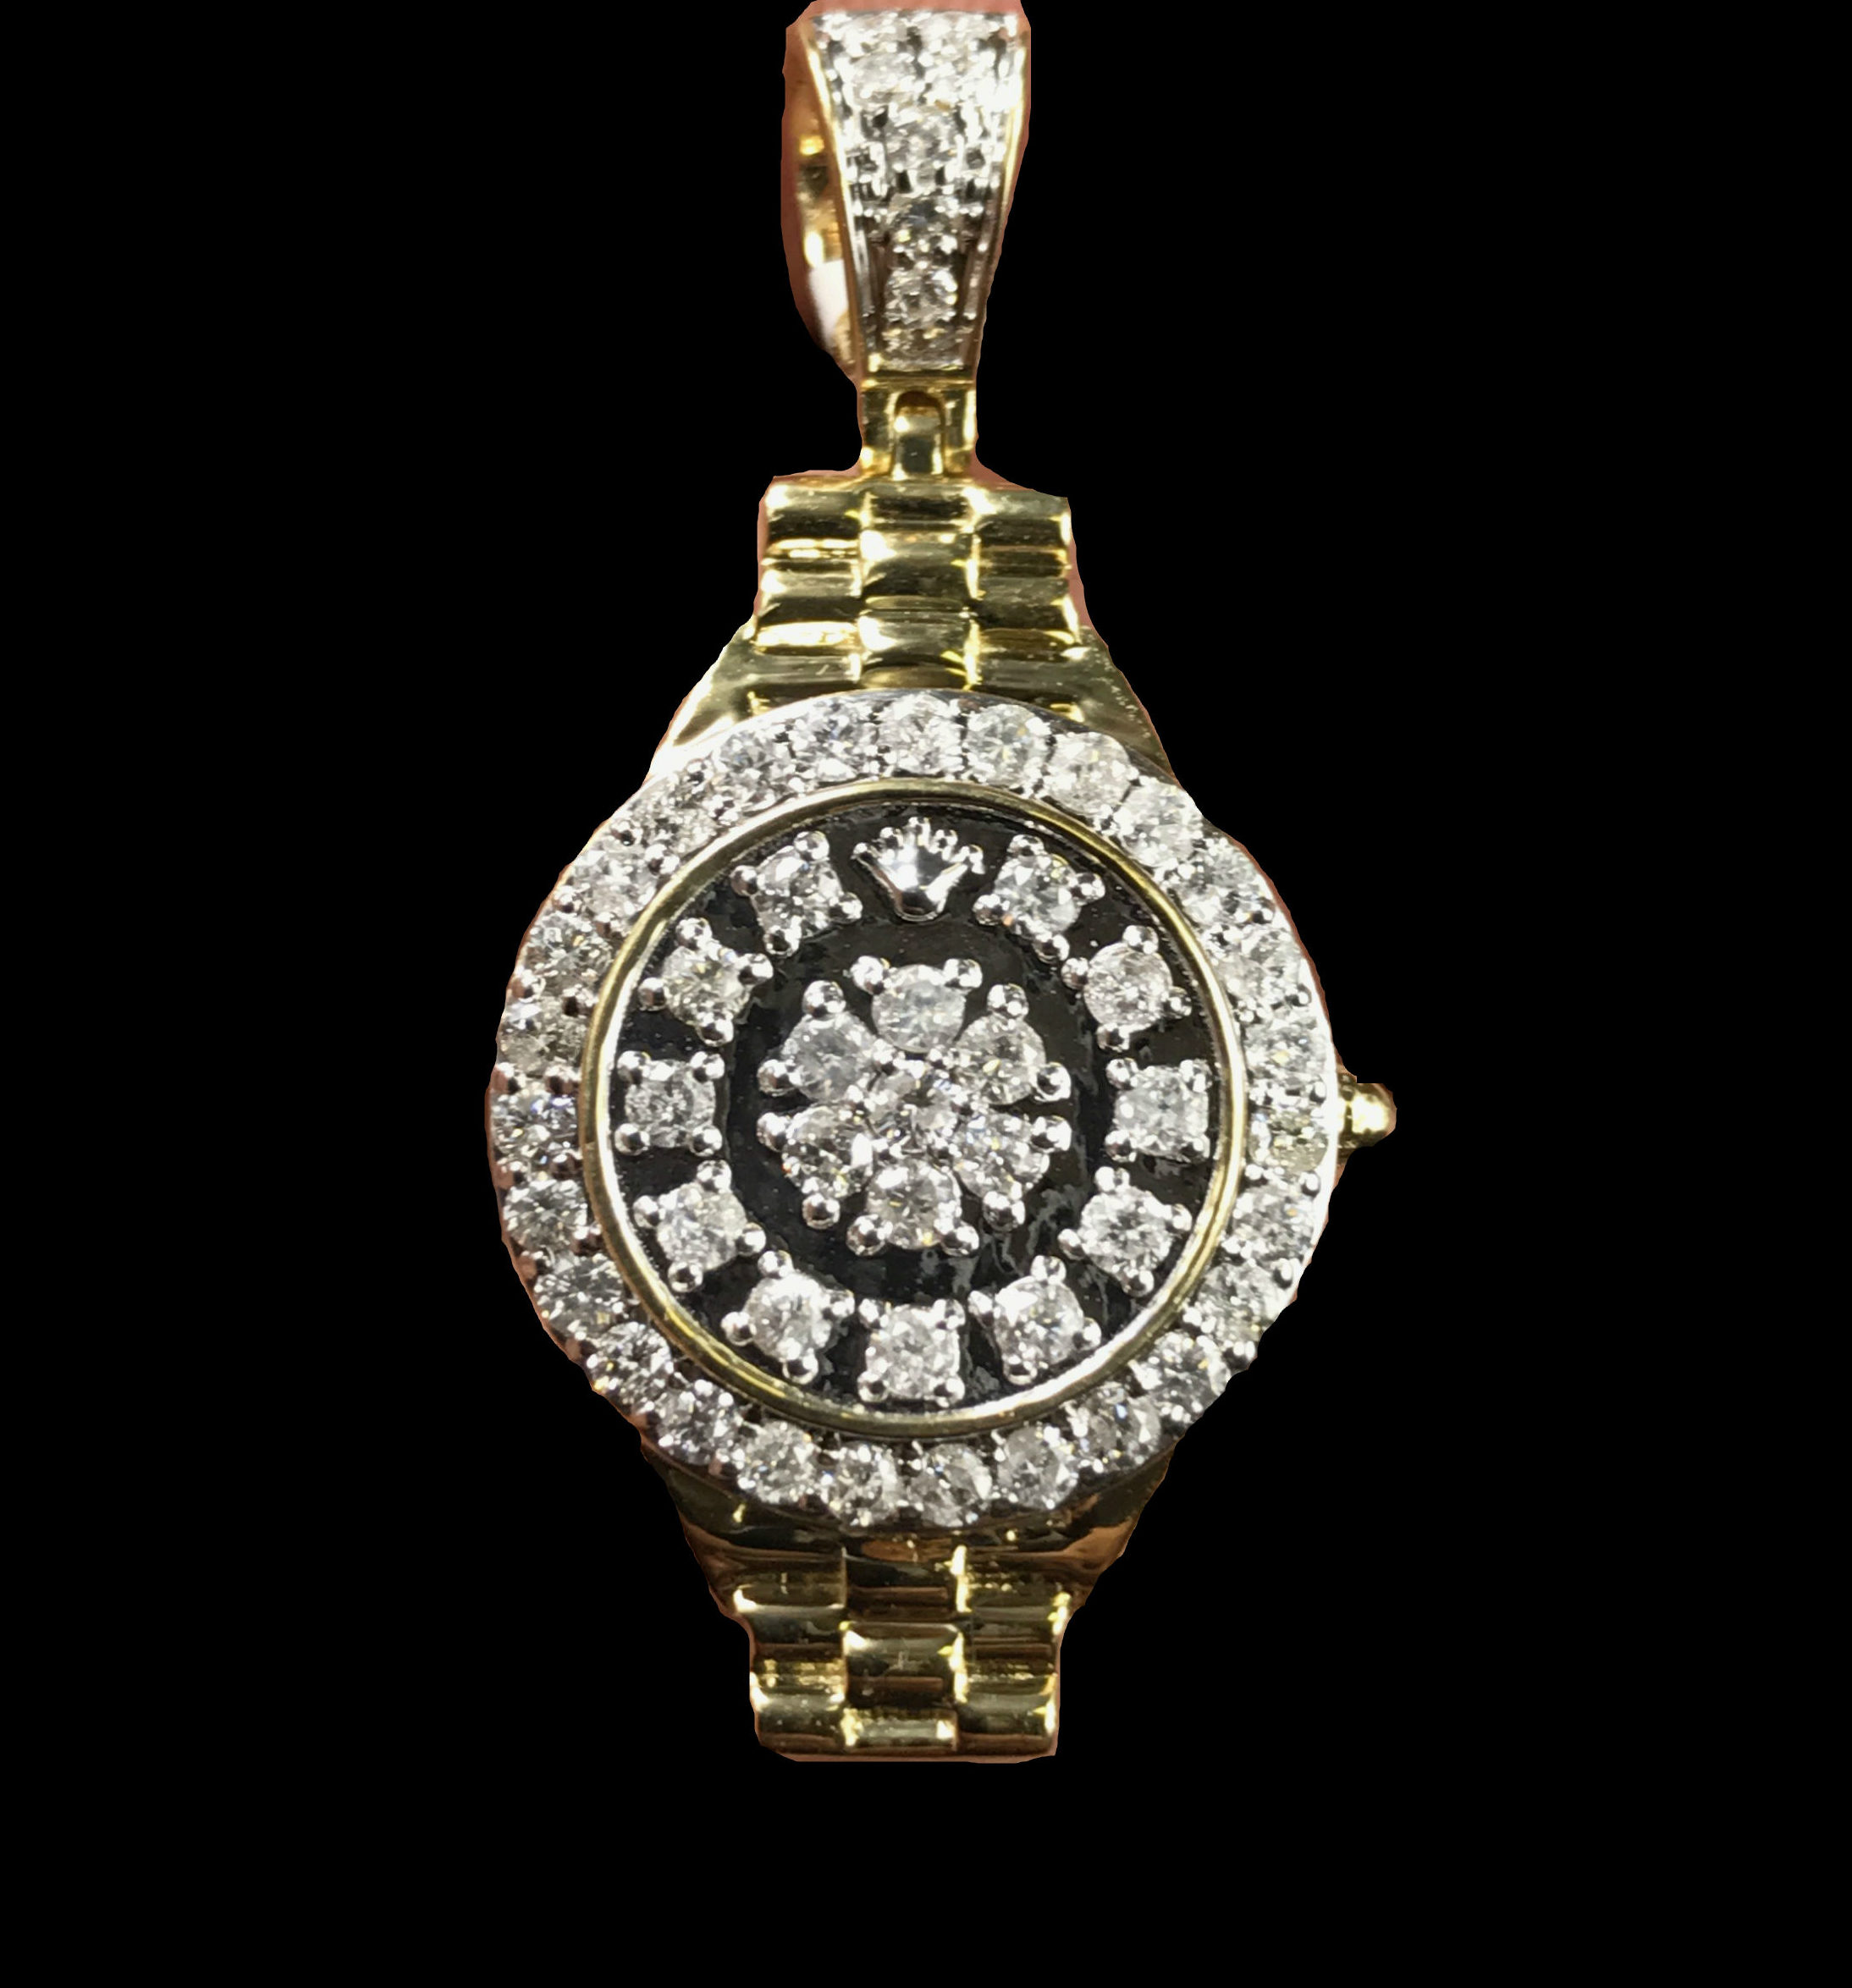 Diamond rolex watch pendant frostbid the product is already in the wishlist browse wishlist mozeypictures Gallery